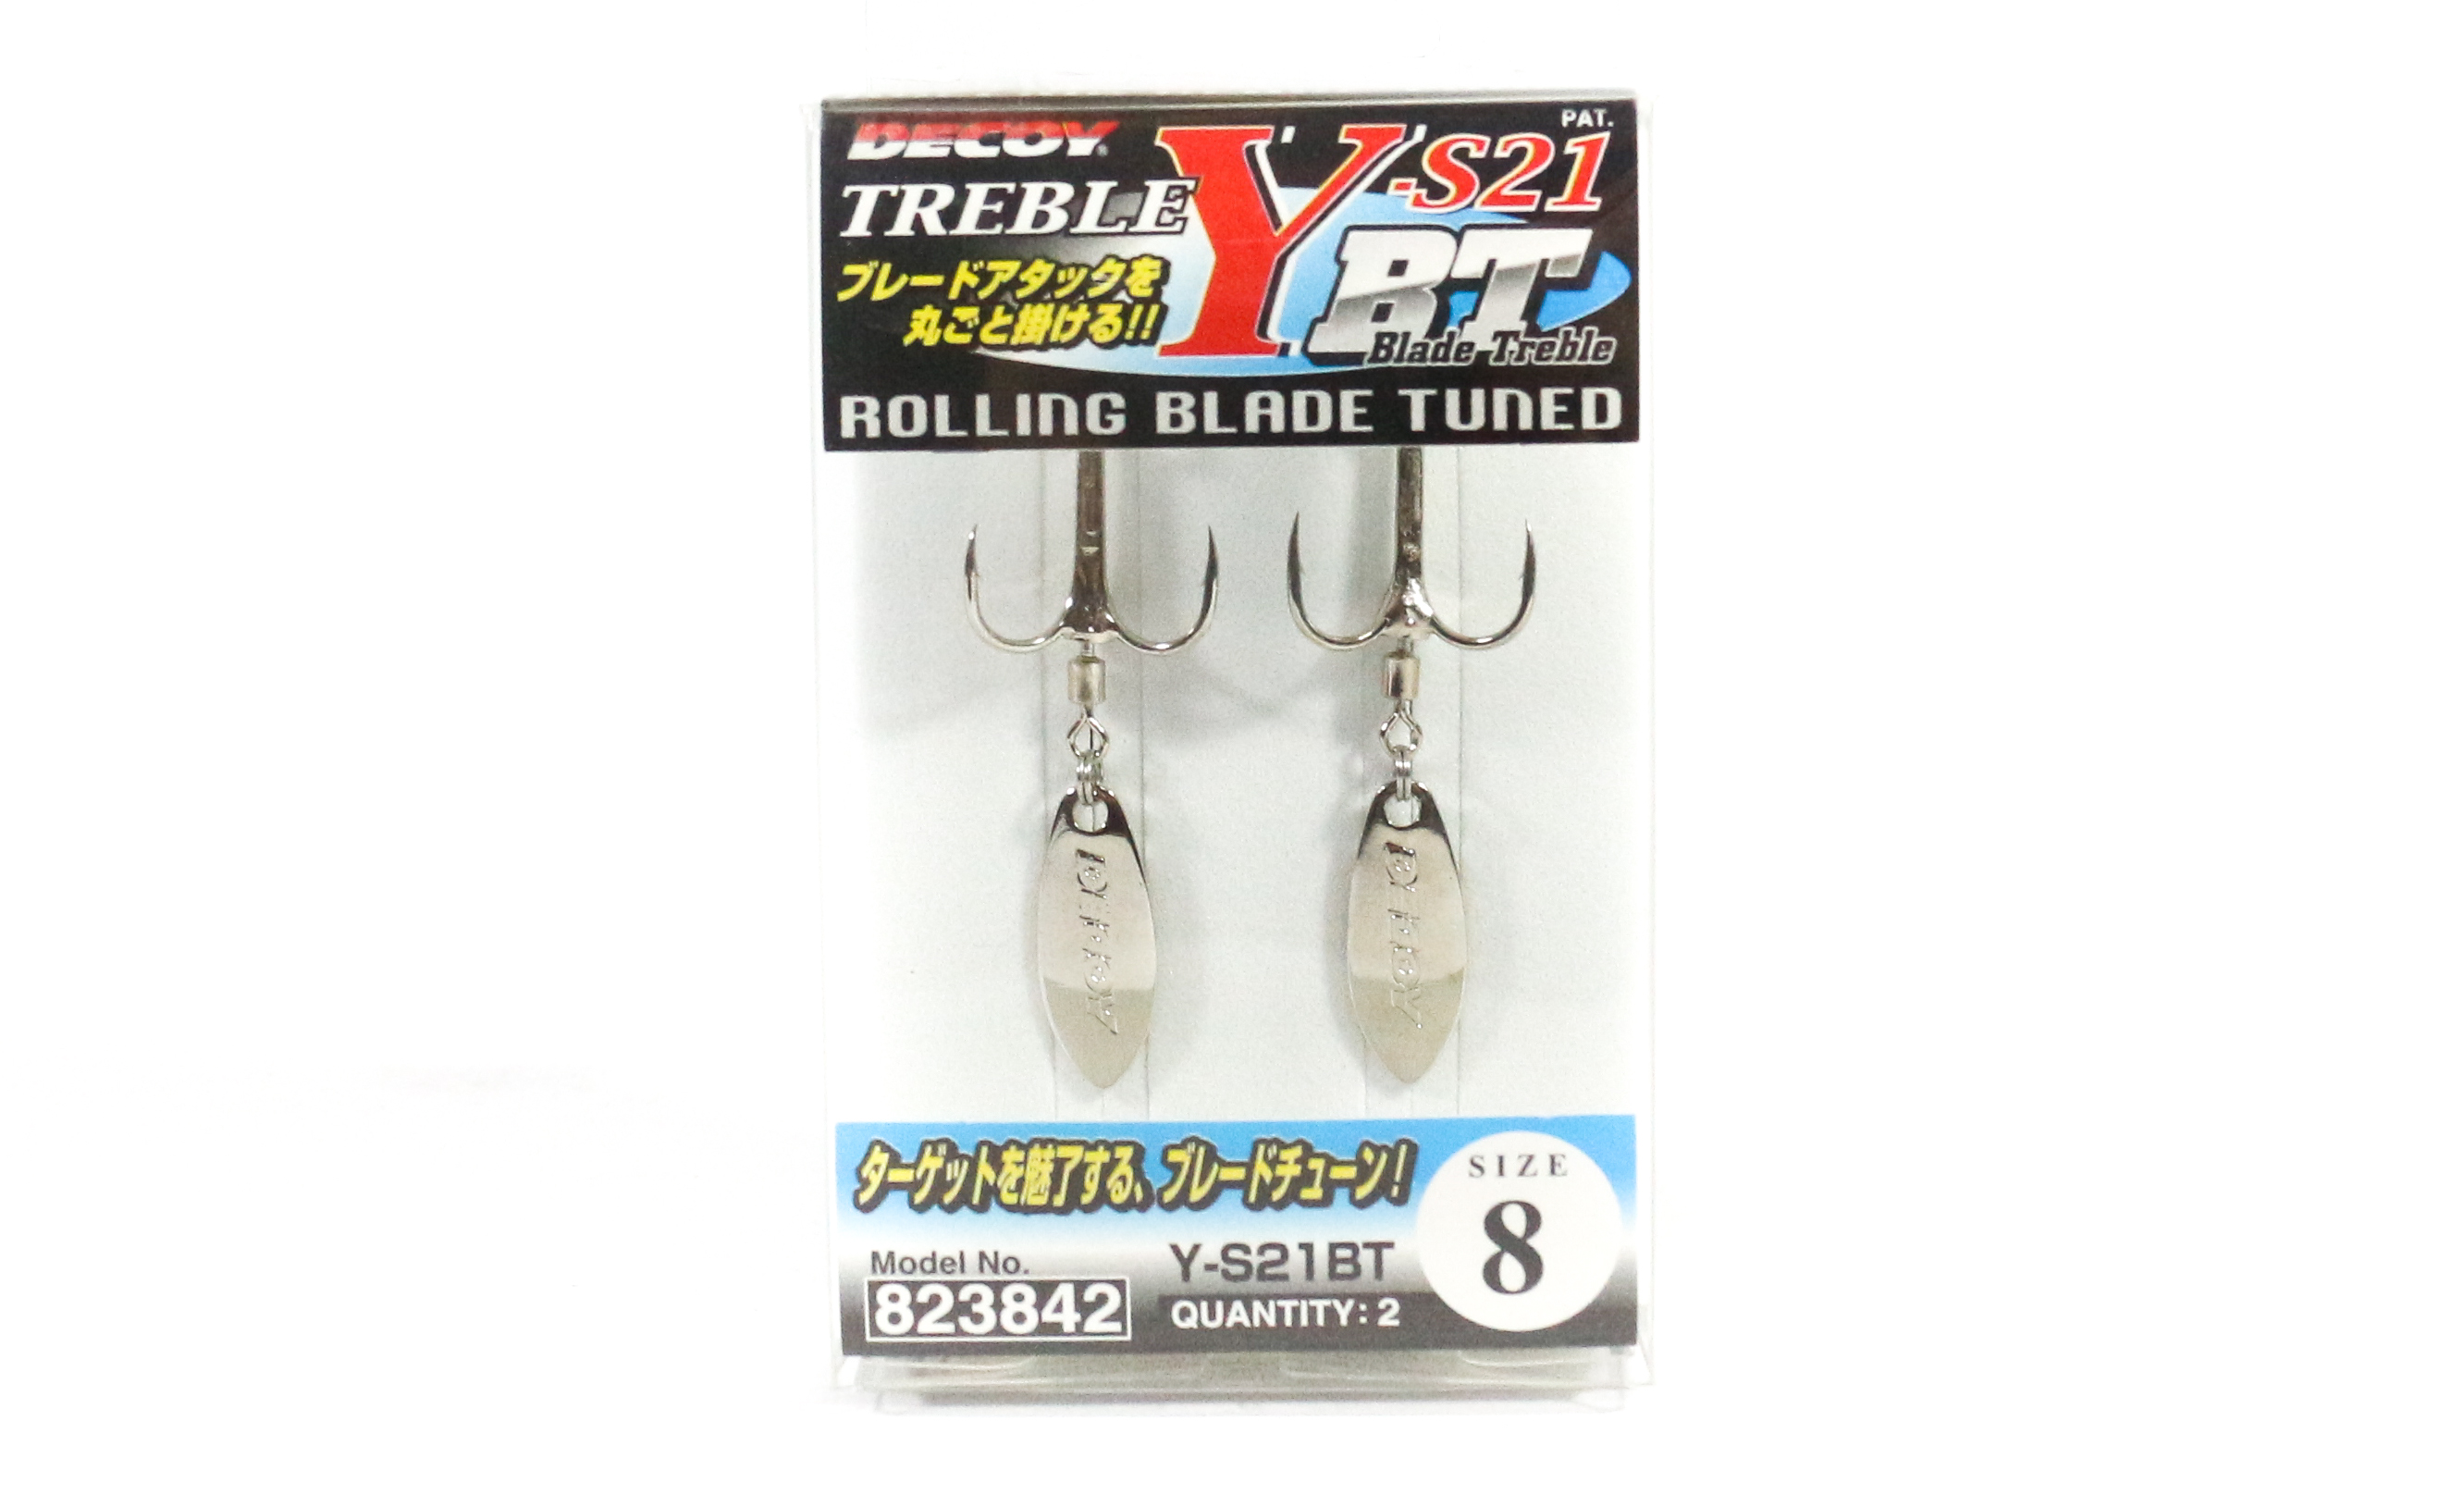 Decoy Y-S21BT Treble Hook Blade Treble Hooks Size 8 (3842)